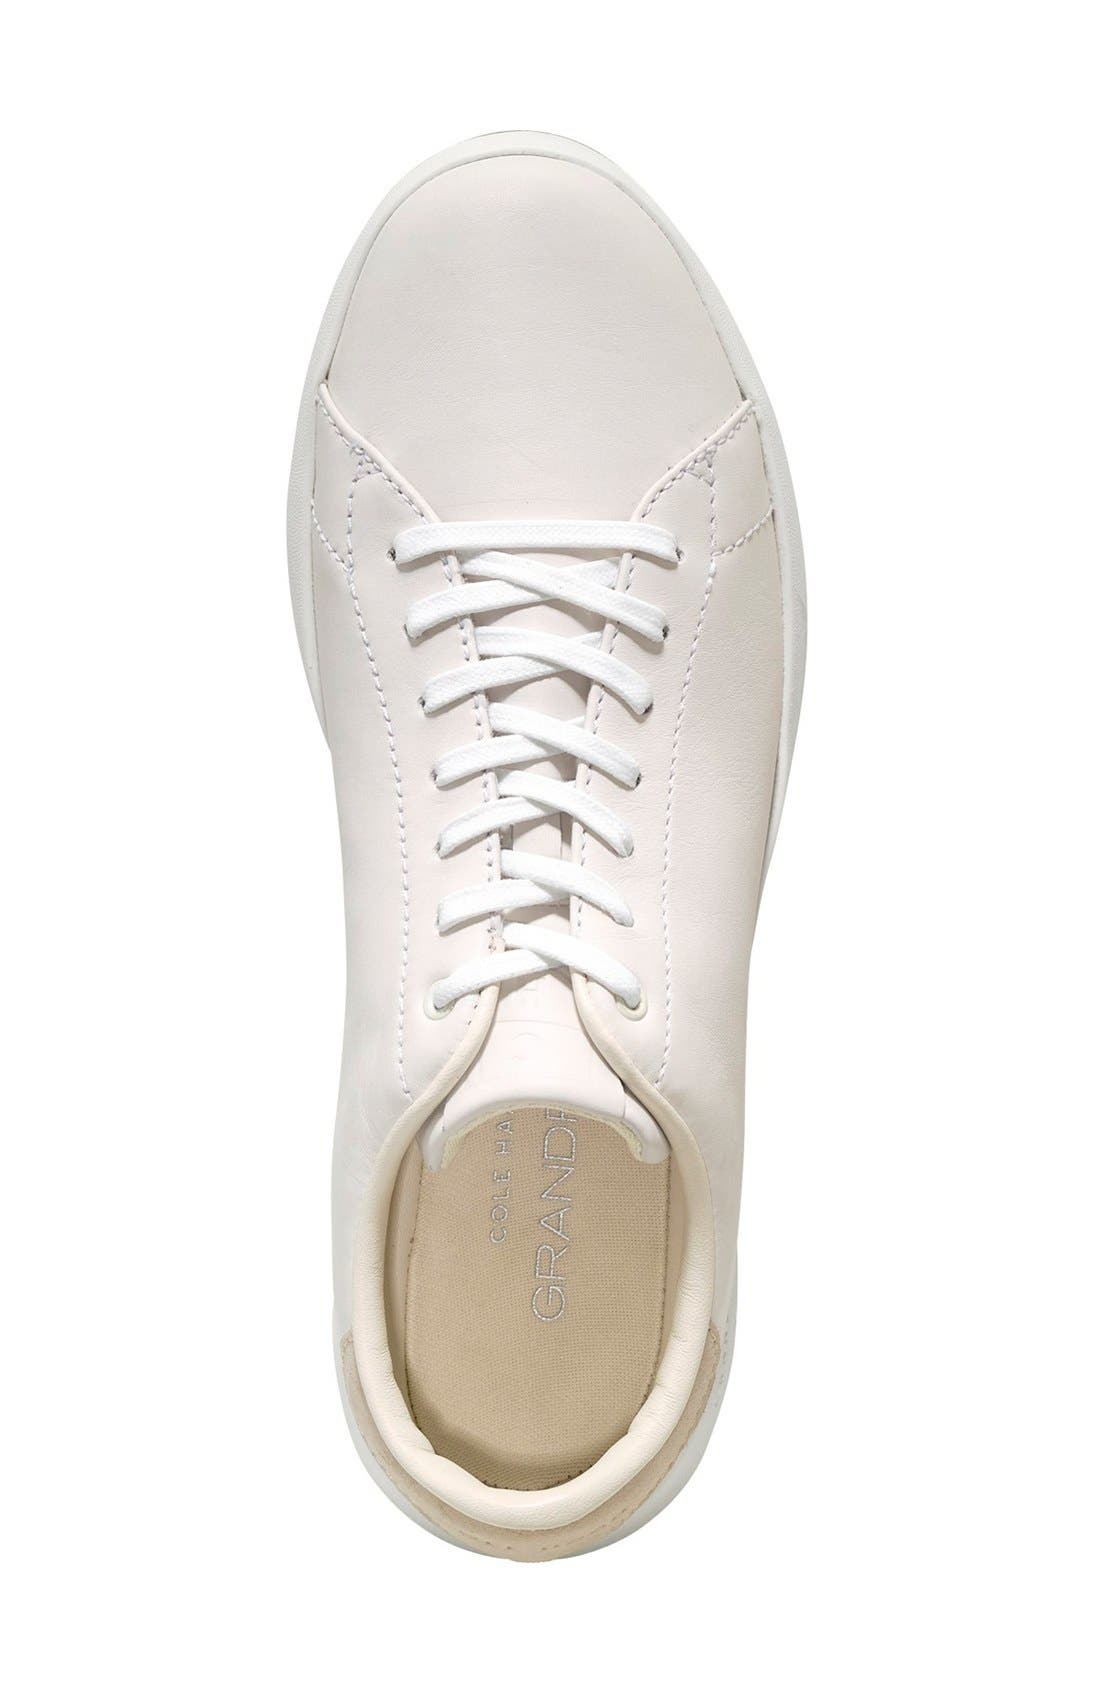 GrandPro Tennis Sneaker,                             Alternate thumbnail 10, color,                             WHITE